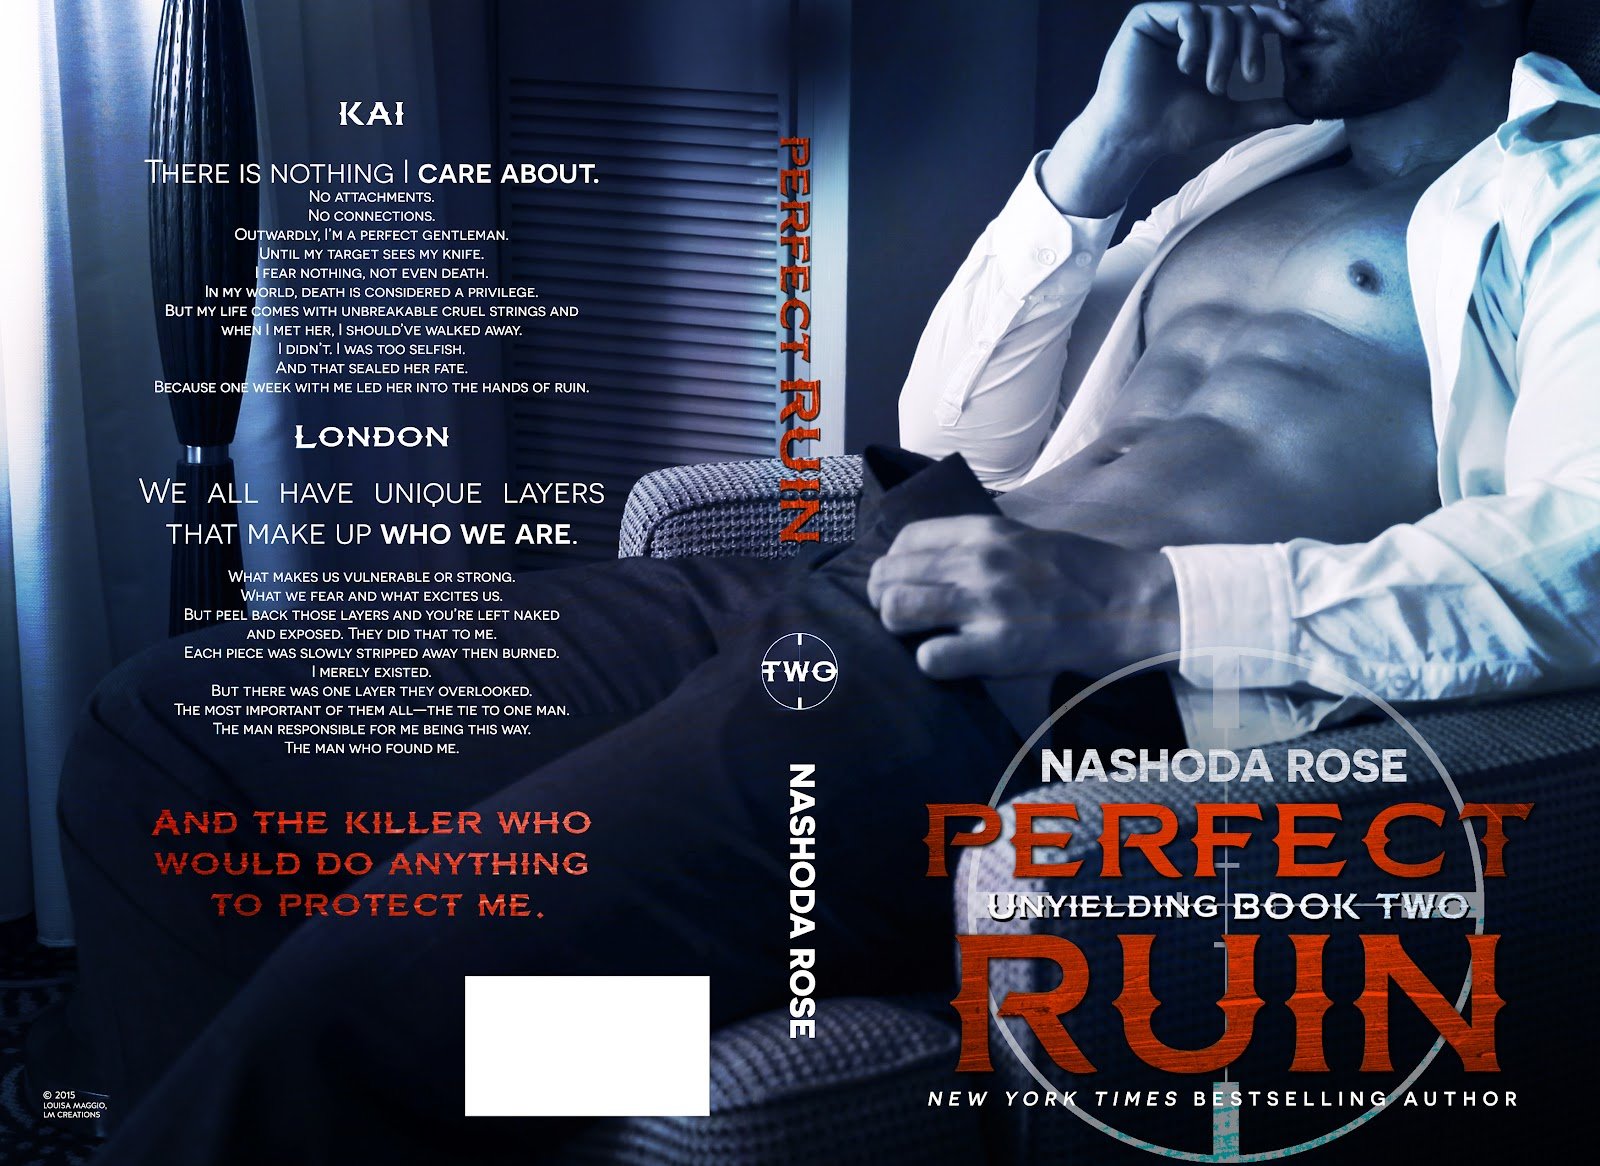 PERFECT RUIN NASHODA ROSE FULL JACKET FOR SHARING.jpg